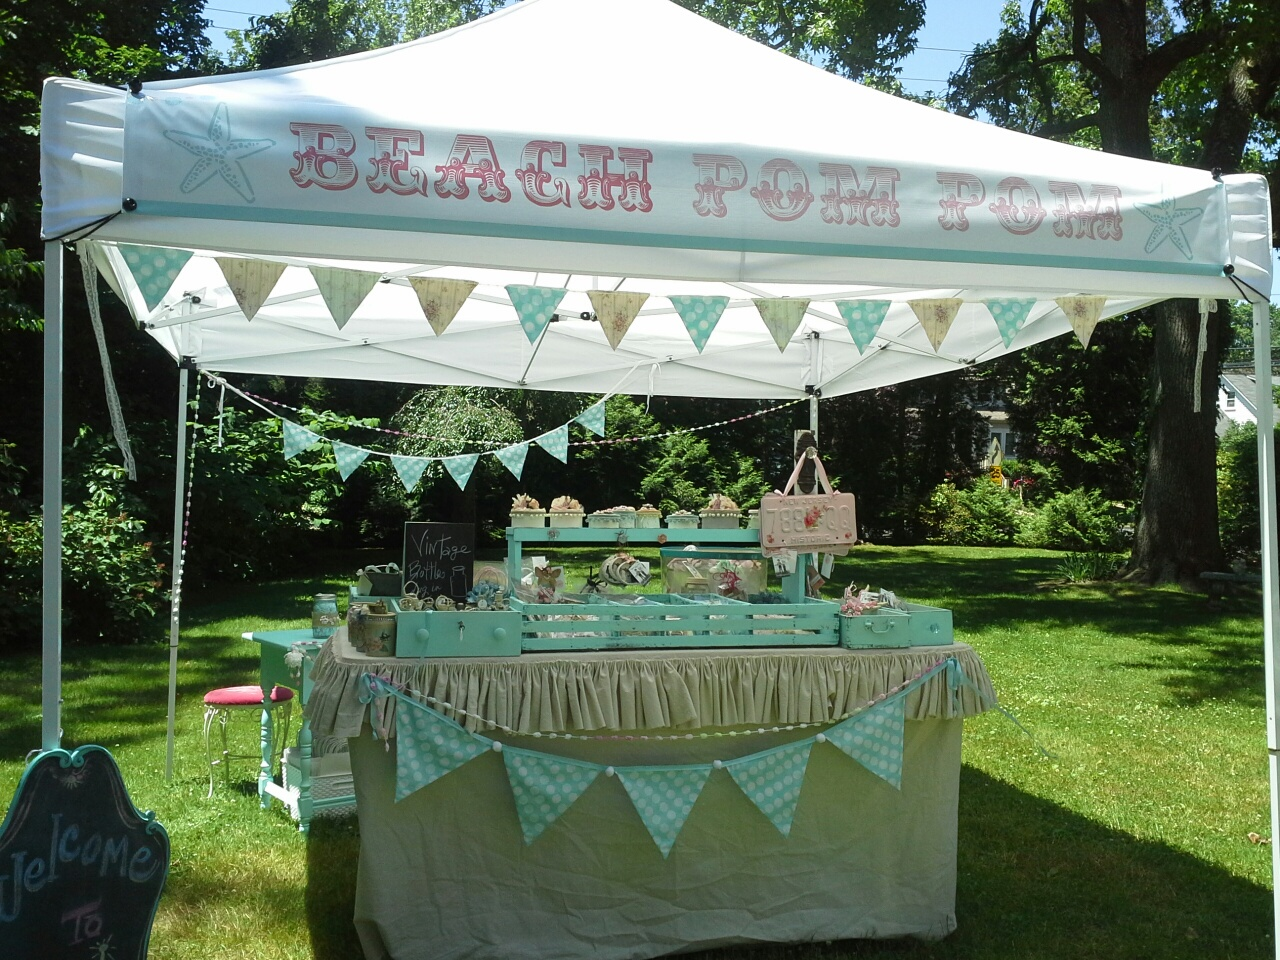 My craft show tent